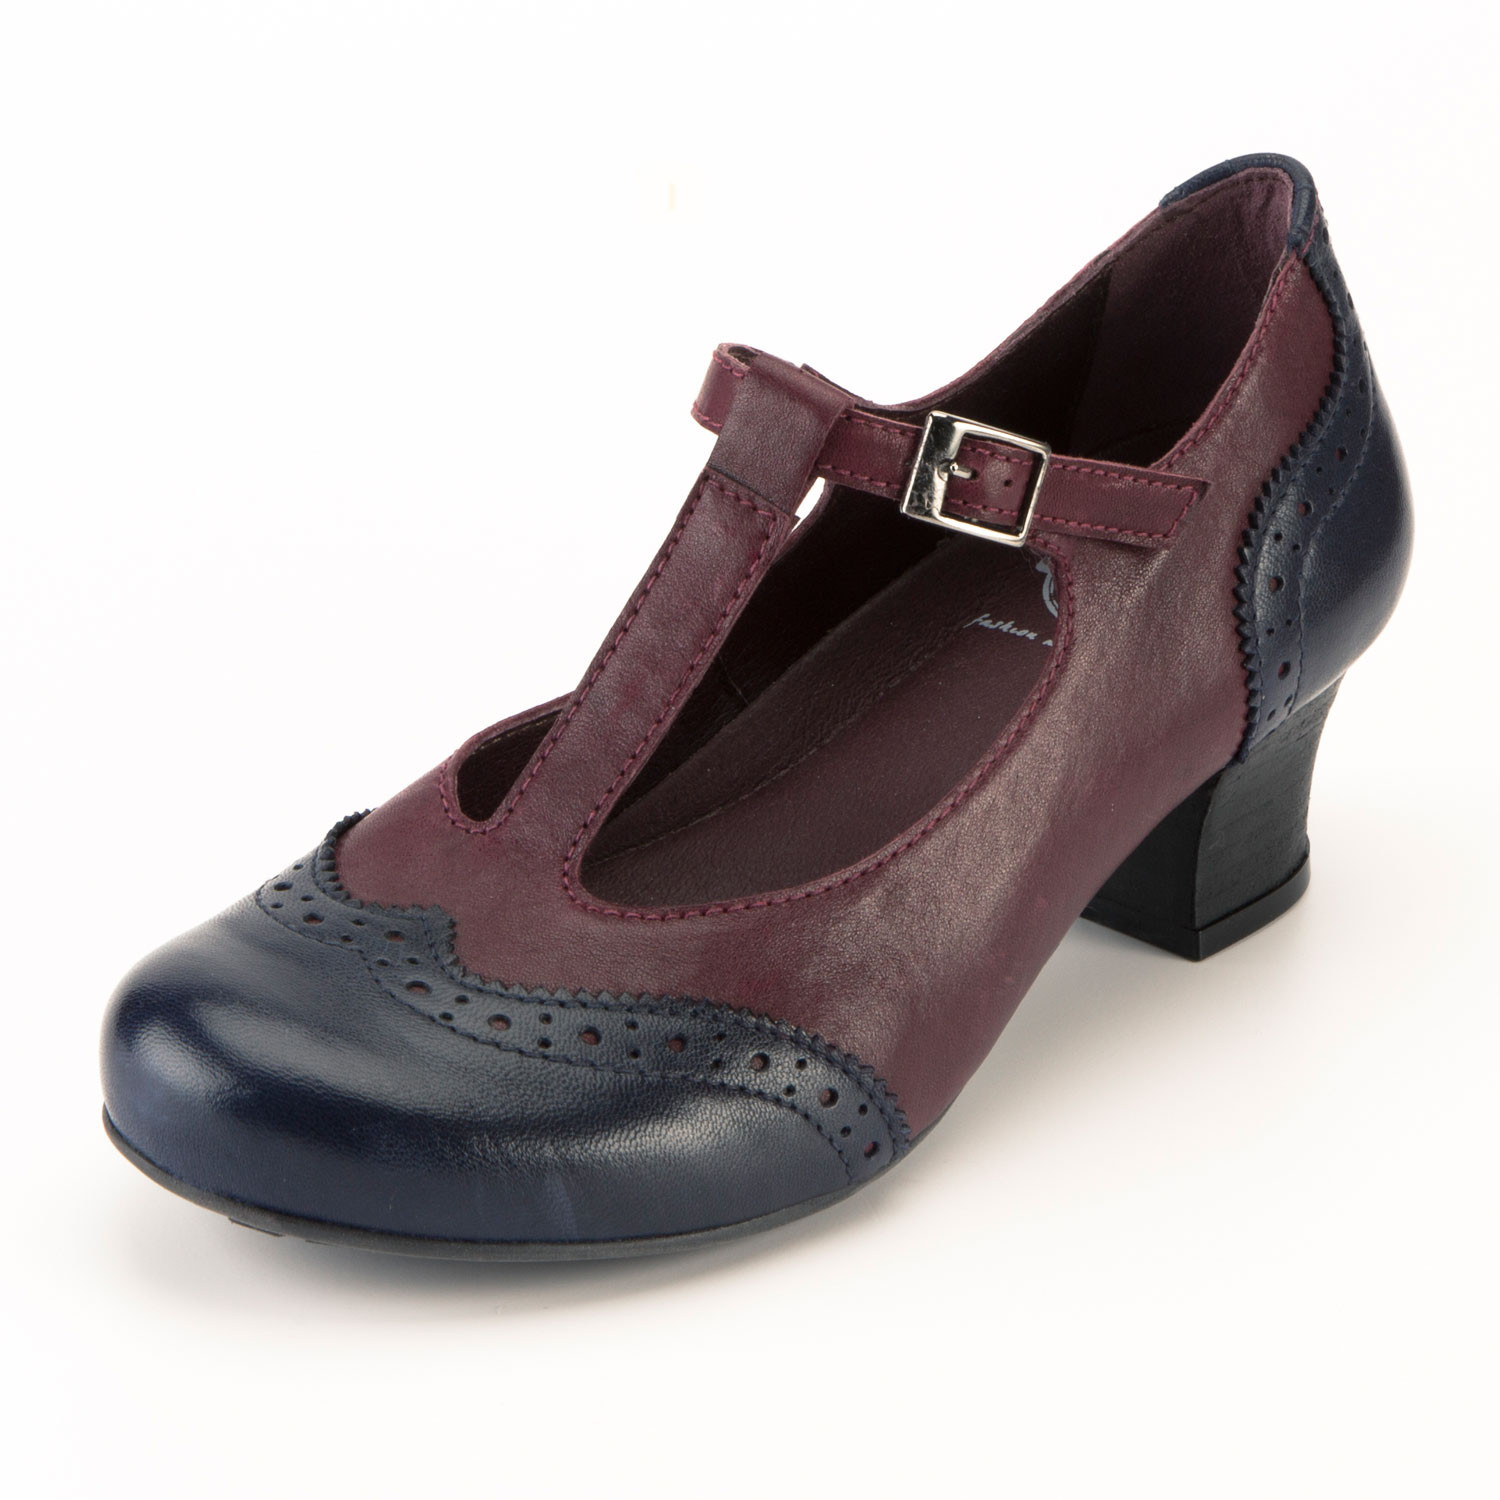 "Brako Pumps met bandje""Minthy"", bordeaux/combi 